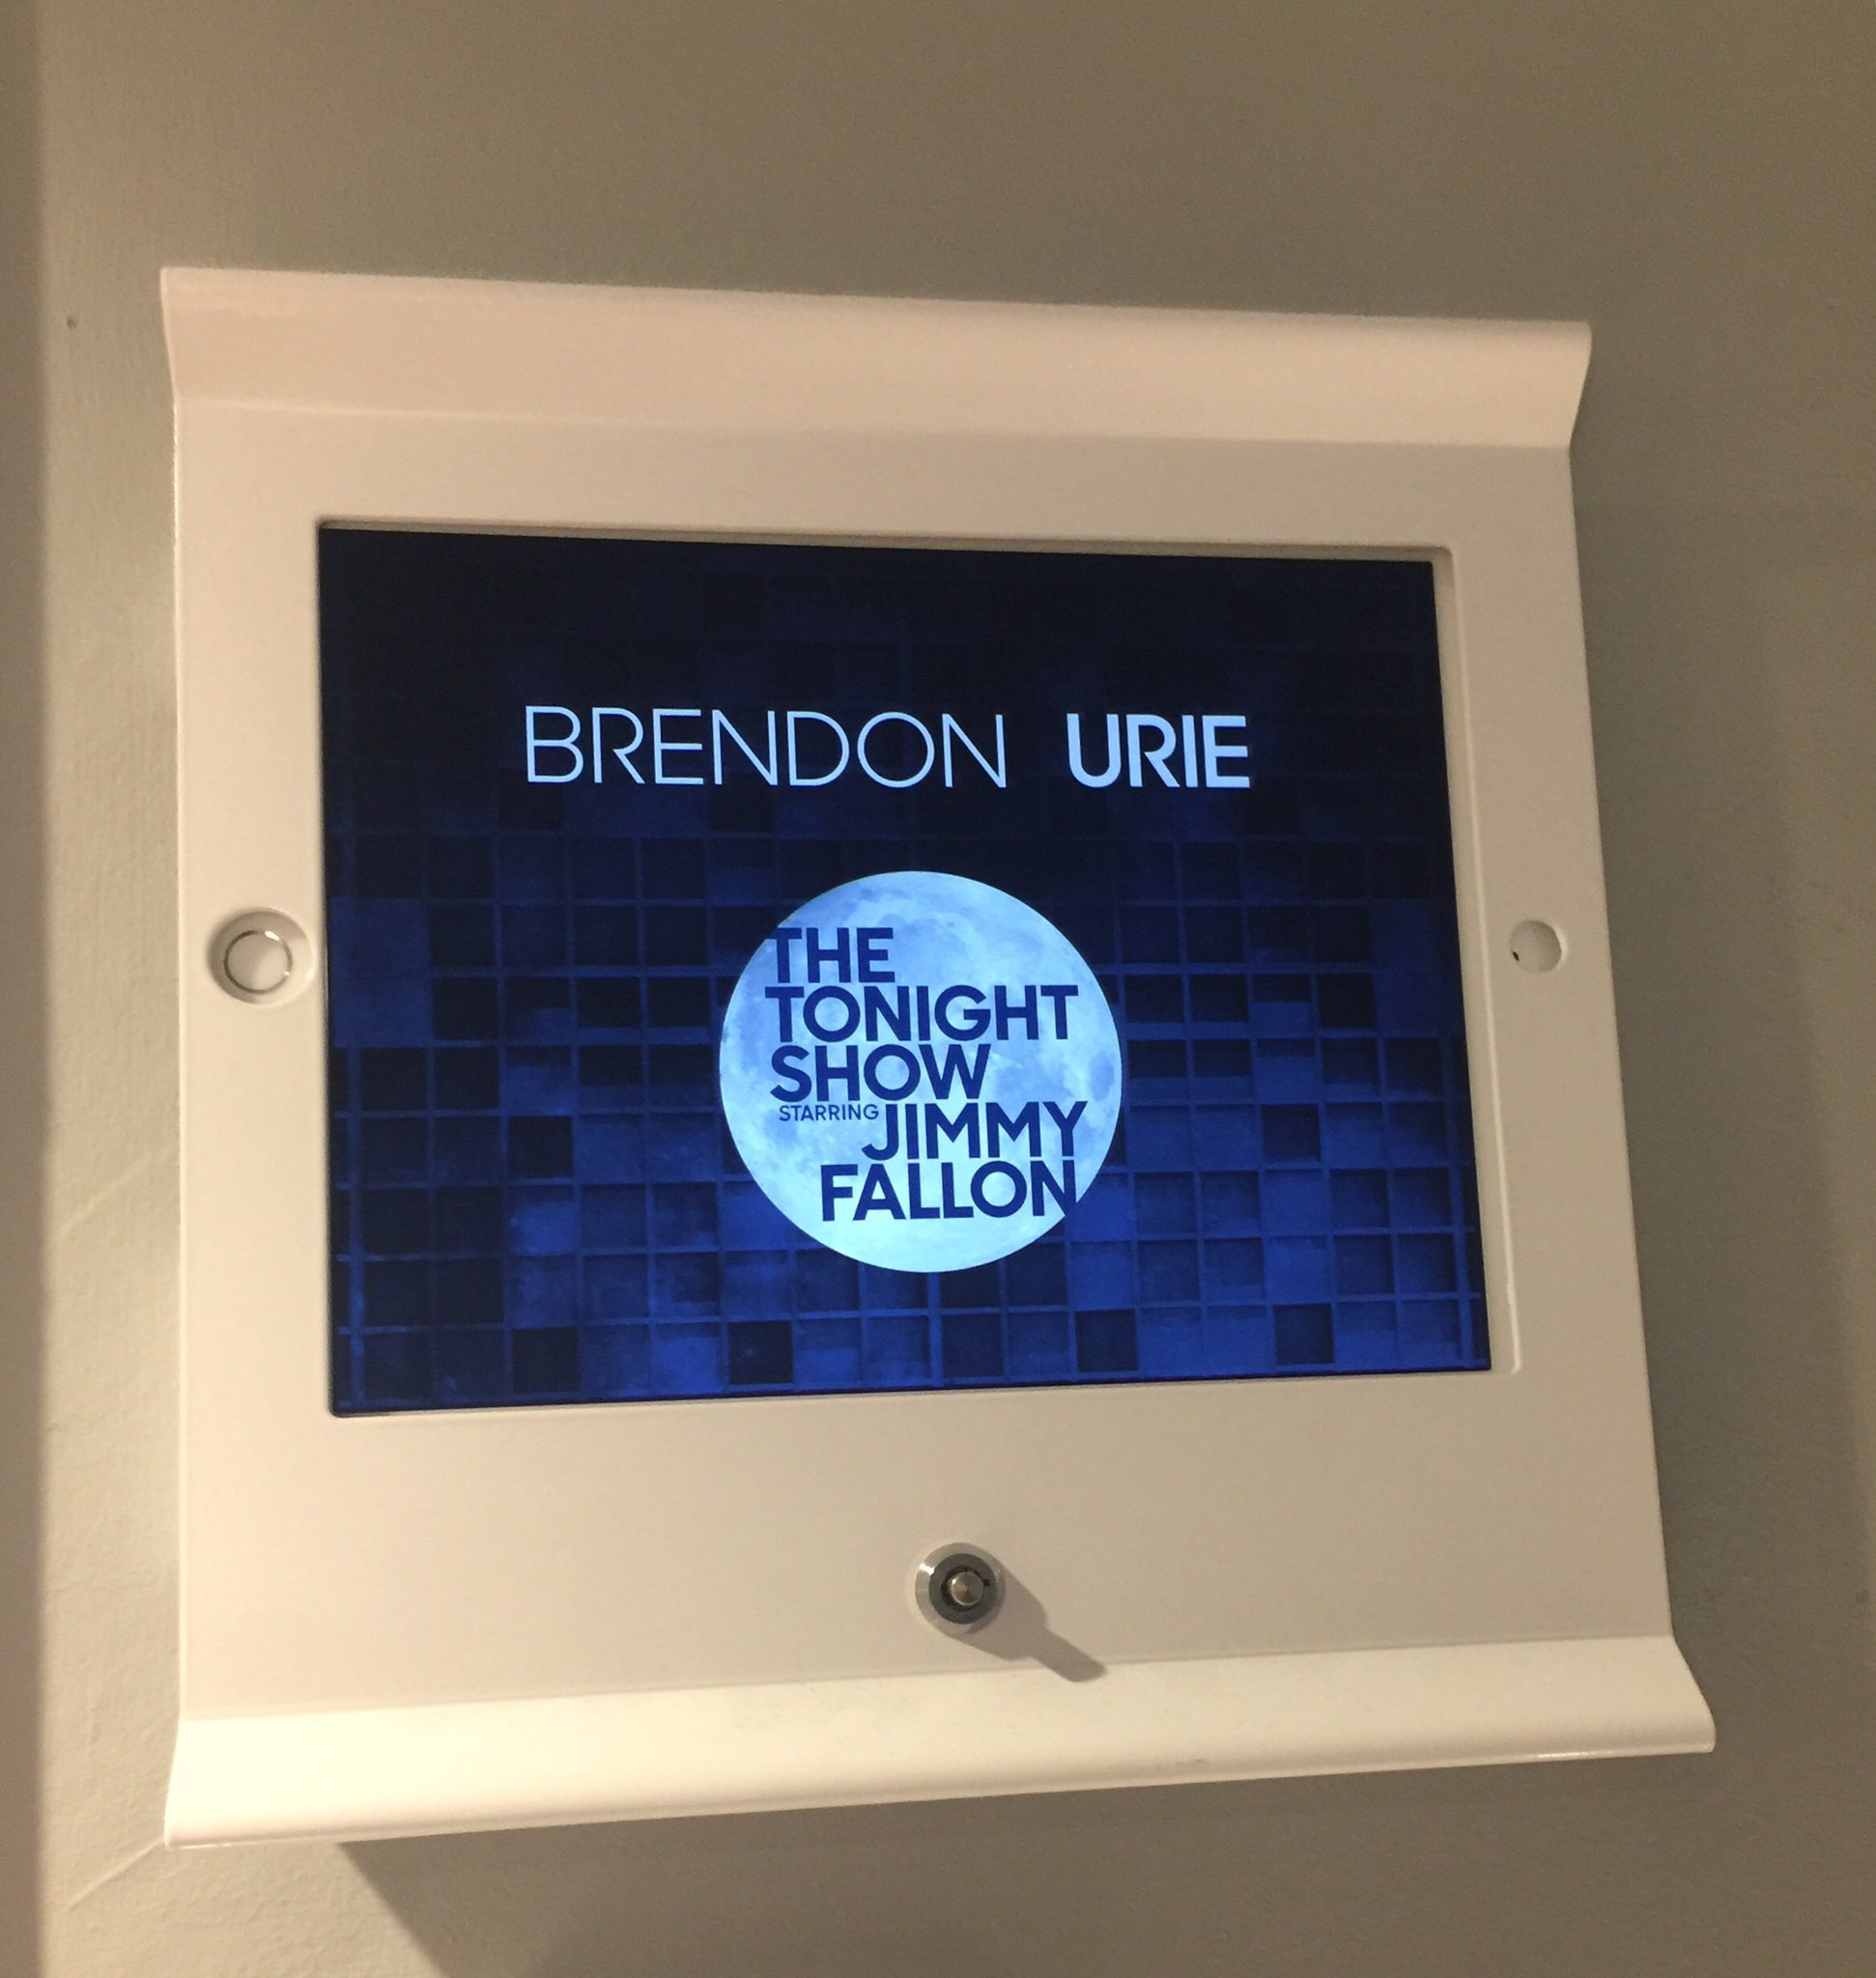 Catch @brendonurie sitting in with @theroots on @fallontonight - 11:35/10:35c on @nbc! https://t.co/9UCQqSmxpo